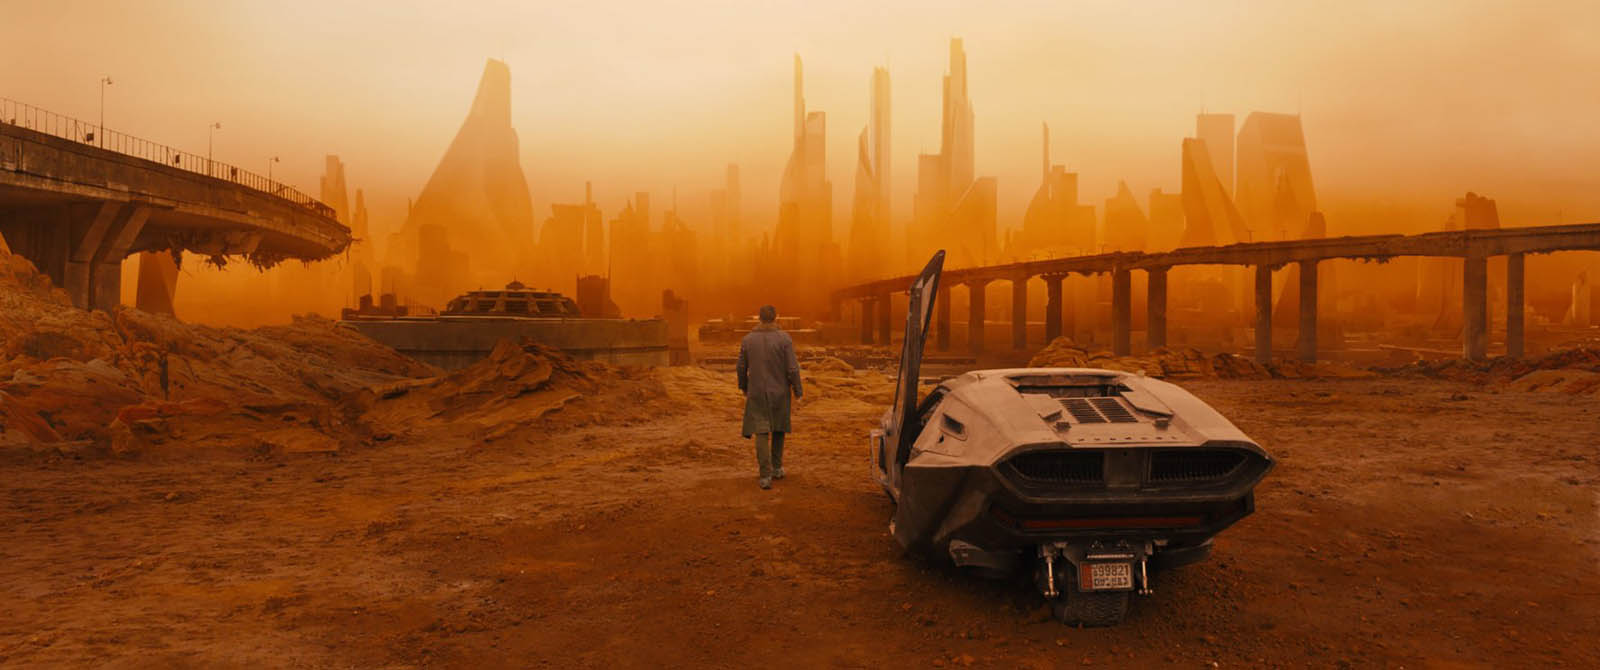 """Blade Runner 2049"", Denis Villeneuve, 2017"